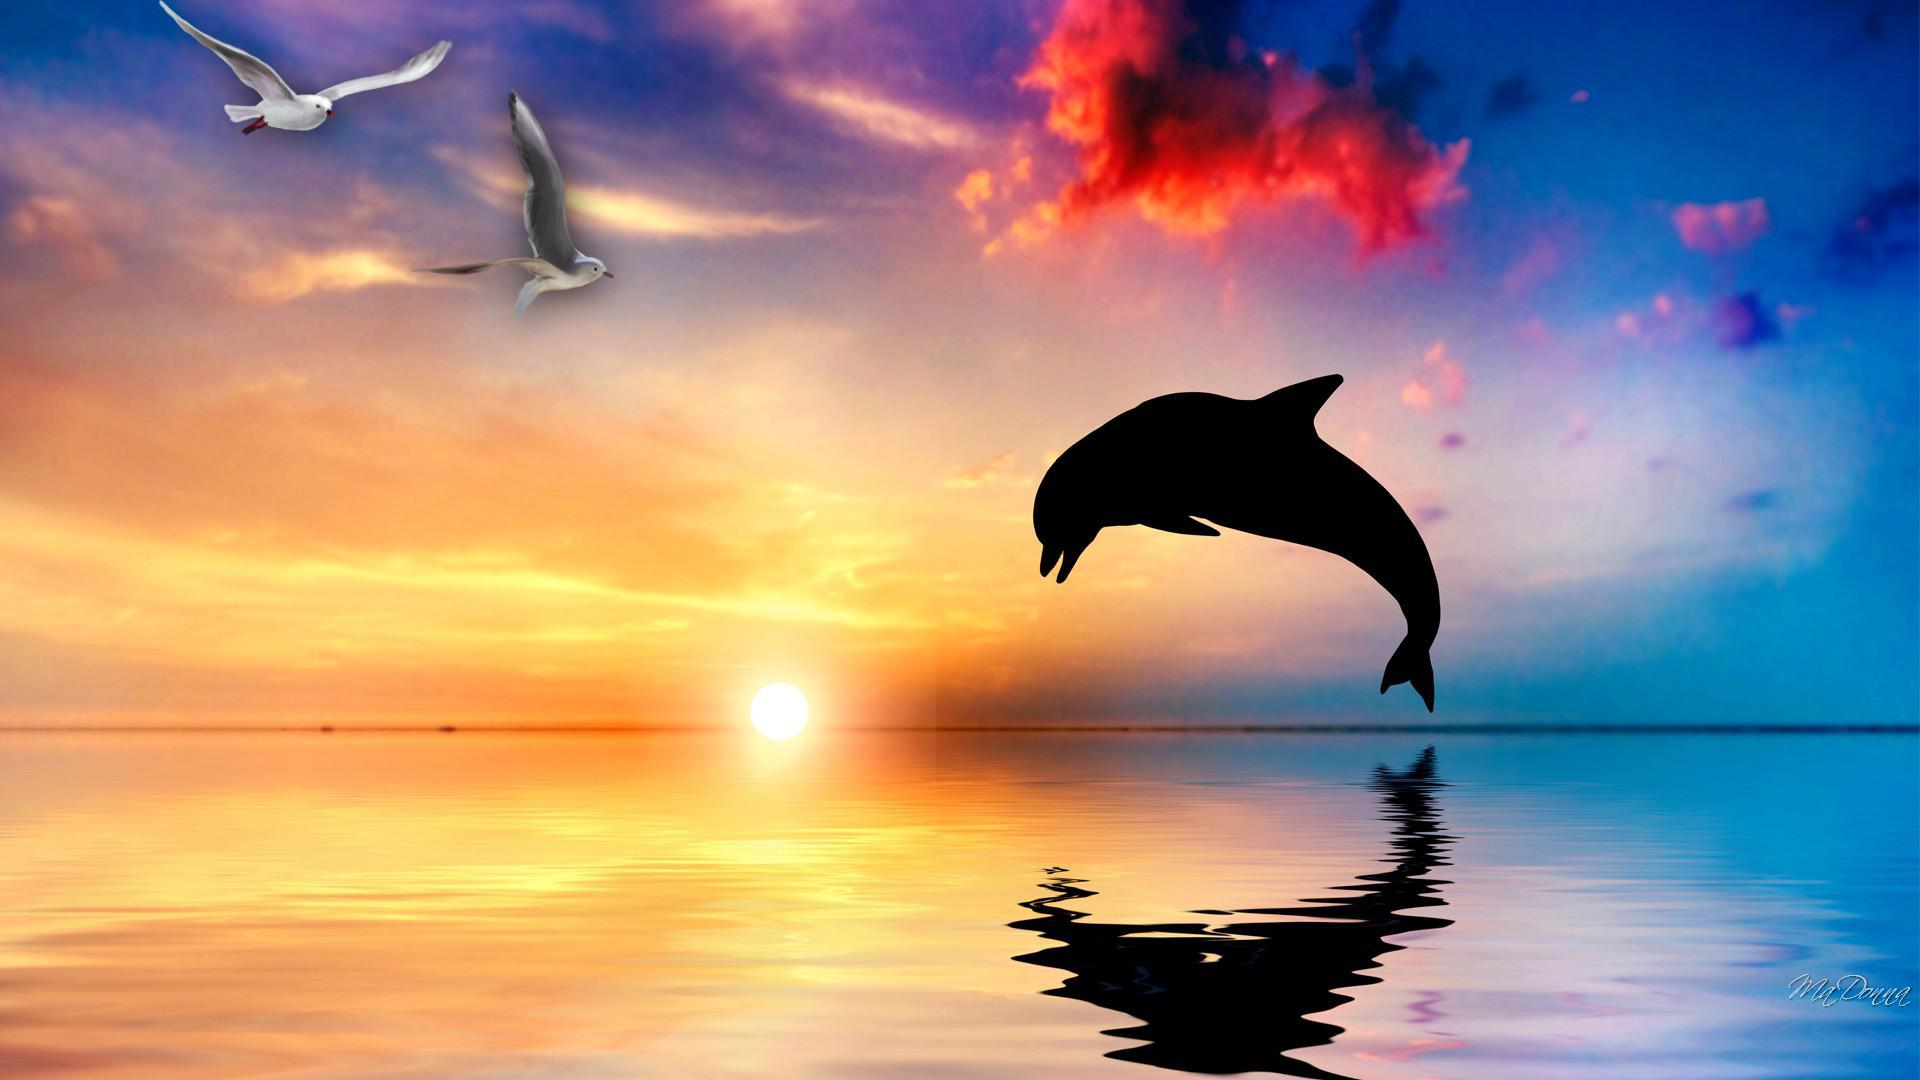 HD wallpapers pink dolphin iphone wallpaper